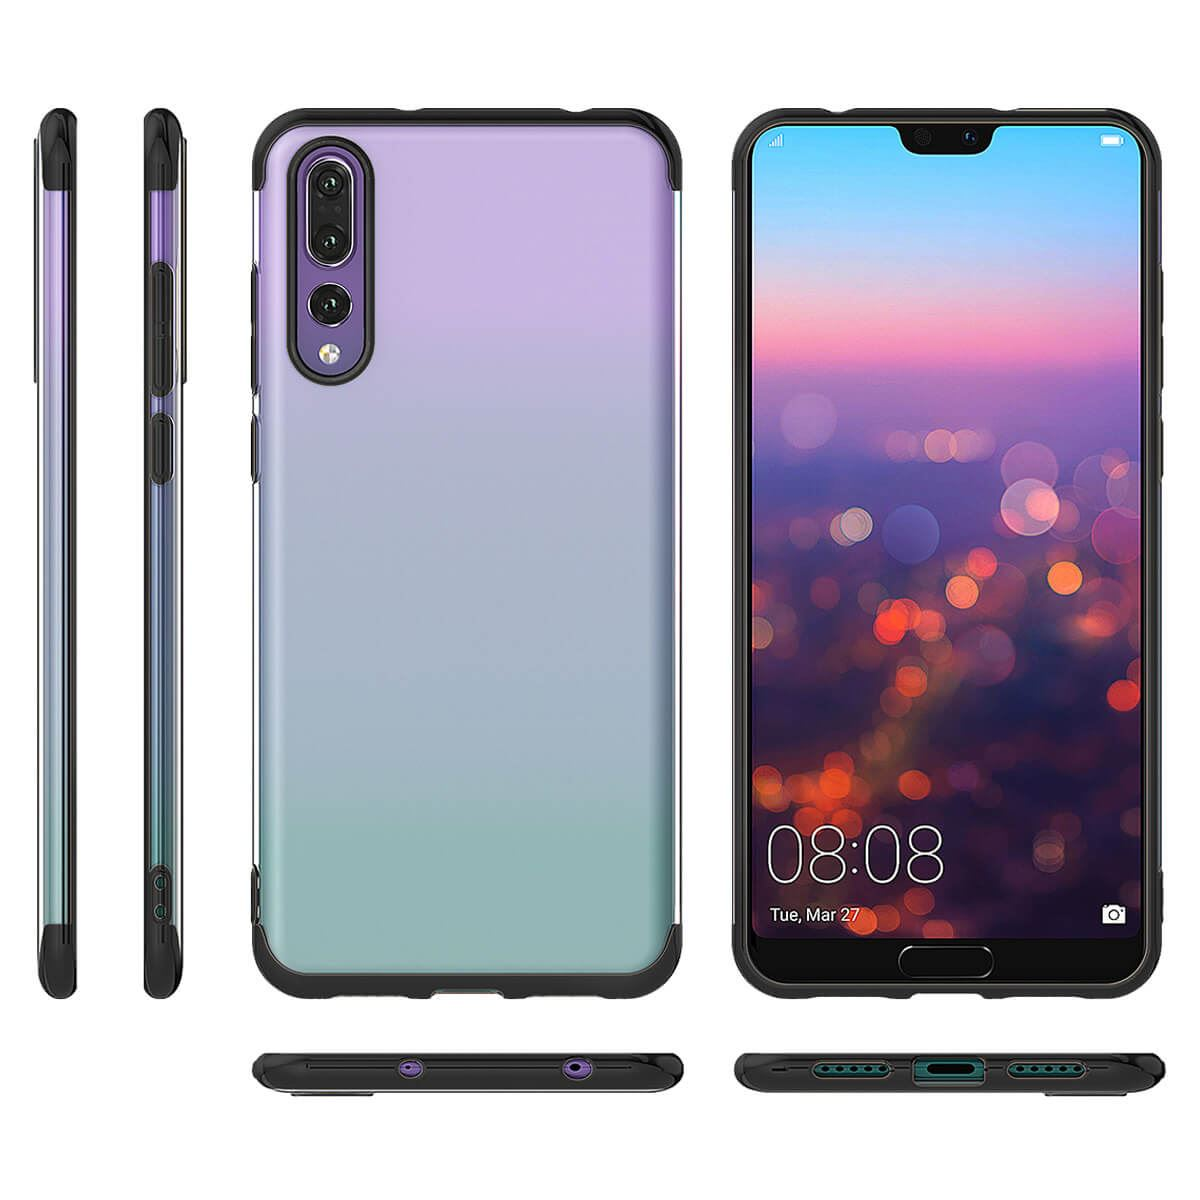 Case-For-Huawei-P20-Pro-P-Smart-Stylish-Hybrid-Shockproof-Plating-Silicone-Cover thumbnail 7